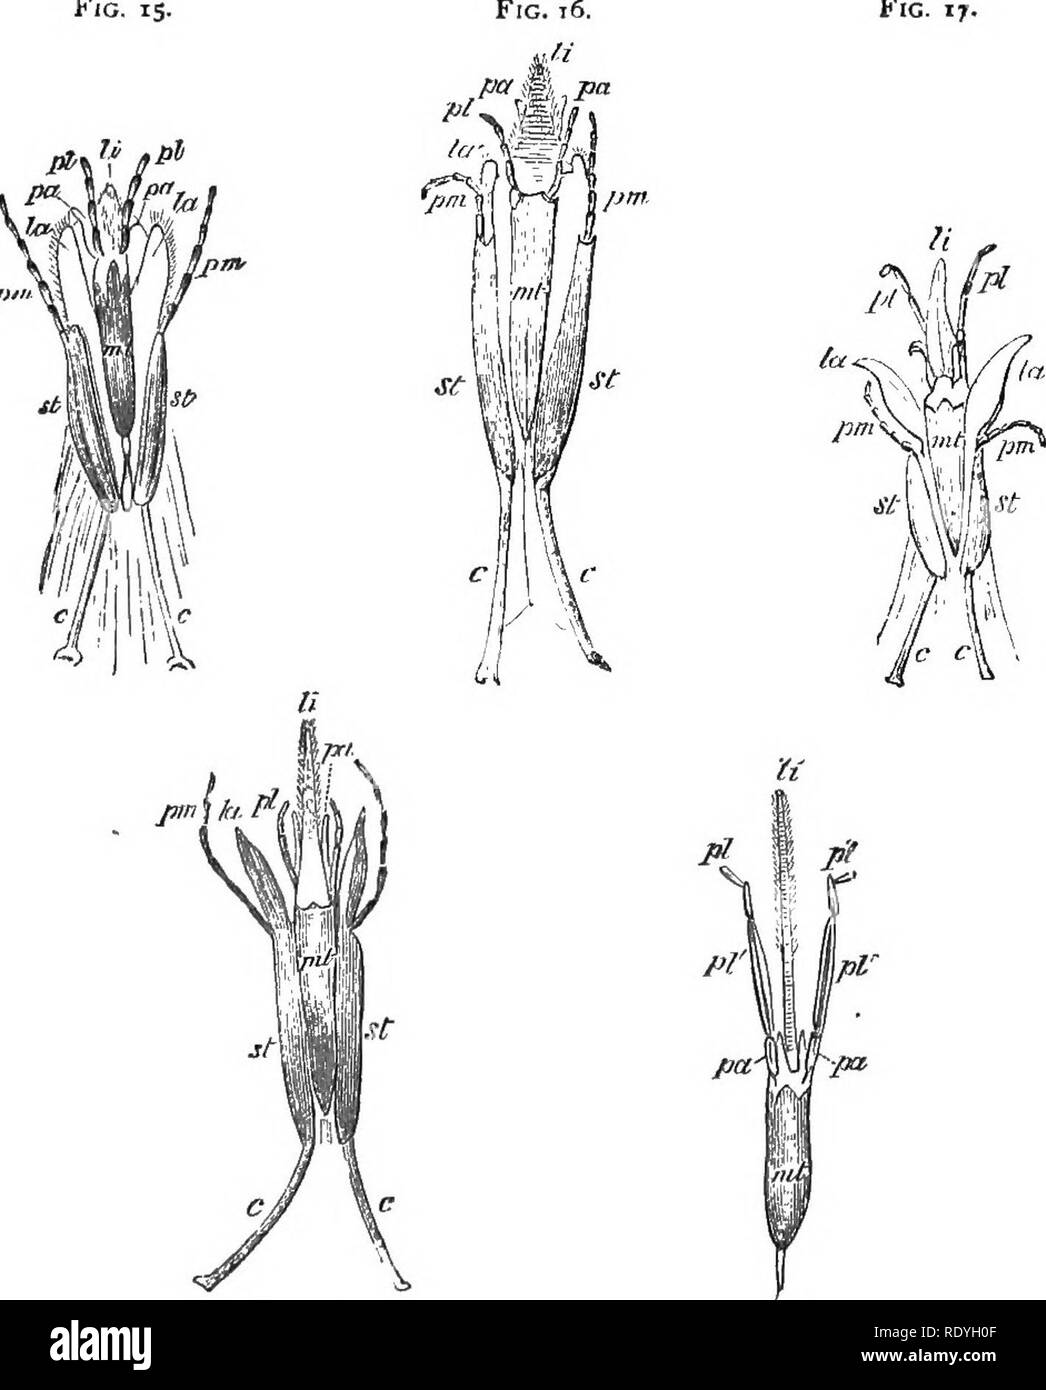 . On British wild flowers considered in relation to insects. Flowers; Fertilization of plants by insects; Plants. I-] MOUTH OF SOLITARY BEES. IS though the bees belonging to this genus feed their young on honey and pollen, they can only get the Fig. is. Fig. 17.. Fig. i3. Fig. 19. Fio. 15.—Mouth-parts of Andrena, seen from below—pci^ paraglossx ; //, ligula; pL labial palpi : pm, maxillary palpi; mt, mentum ; st, stipes; c, cardn ; 0, eye. Fig. 16.—Of Halictus. Fig. 17.—Of Panurgus. Fig. 18.—Of Halictoides. Fio. ig.—Of Chelostoma. former from those flowers in which it is on the surface. In And - Stock Image